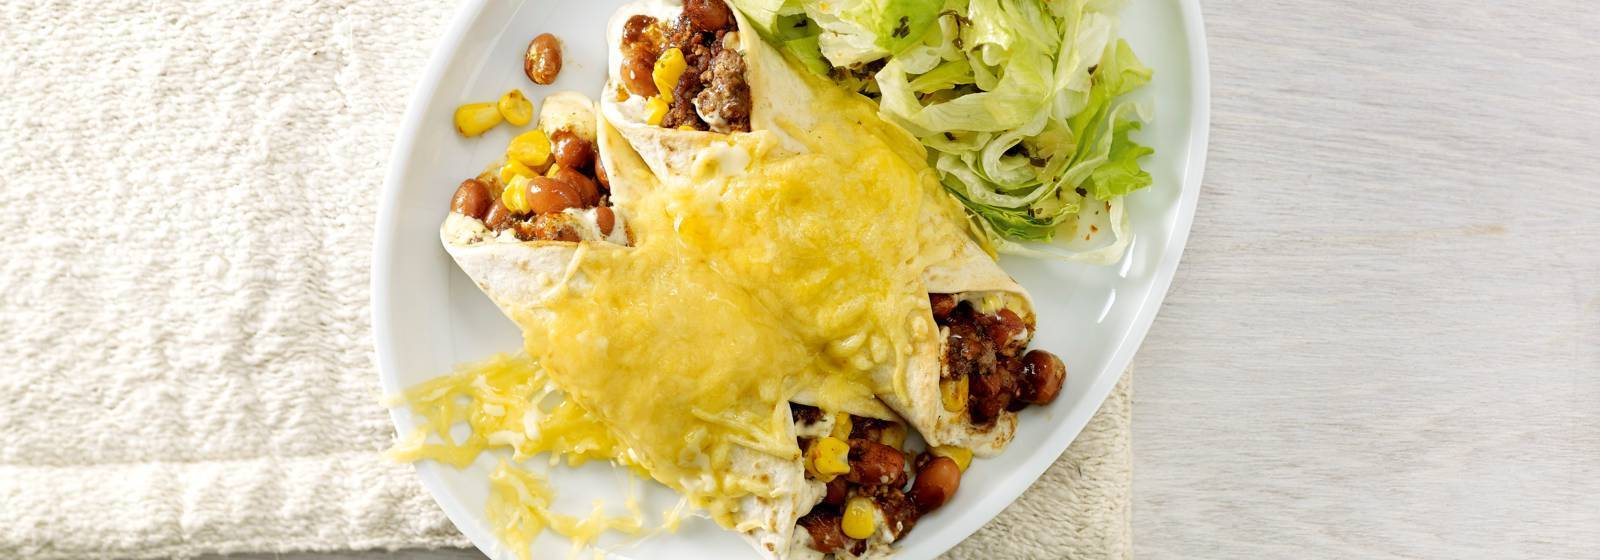 Minced meat burrito with lettuce